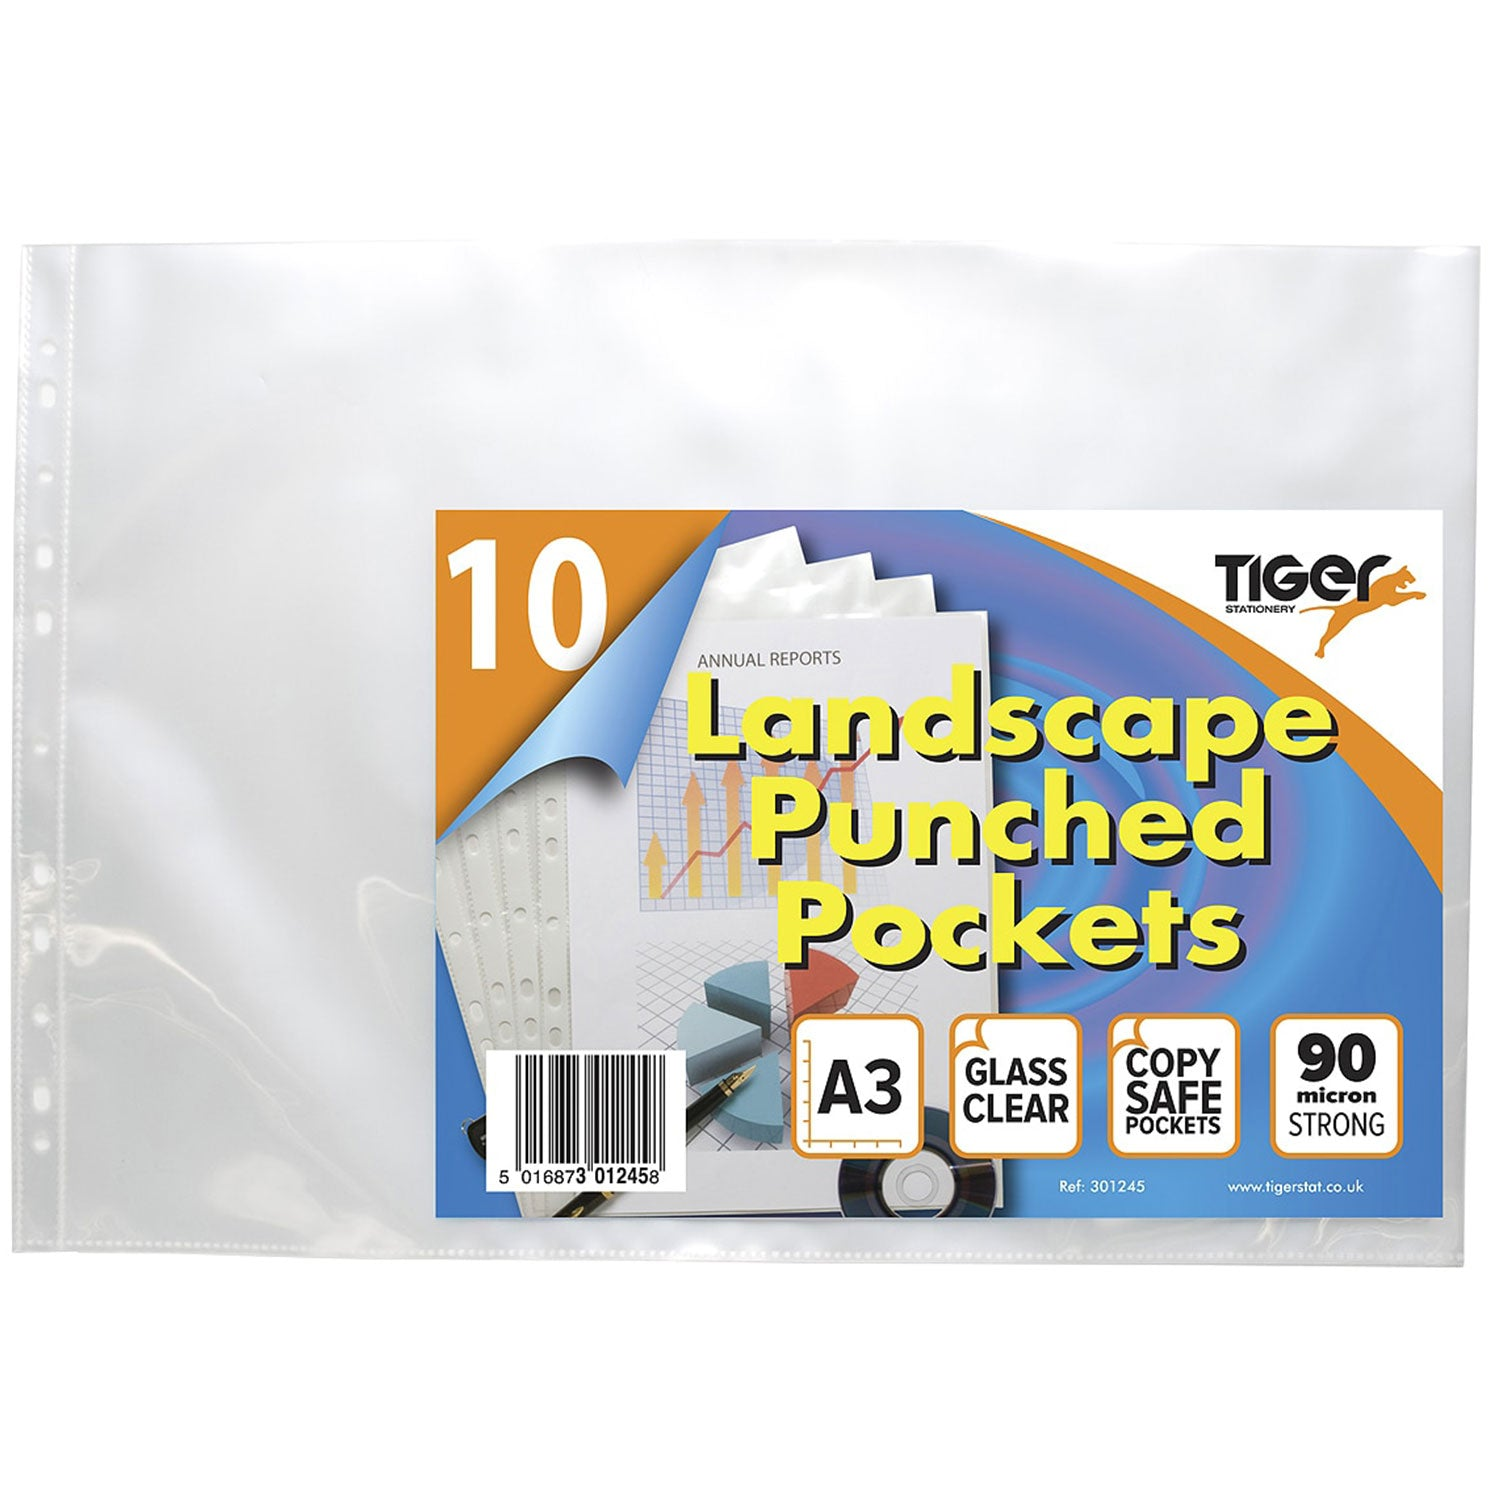 Tiger A3 Landscape Punched Pockets - Pack of 10